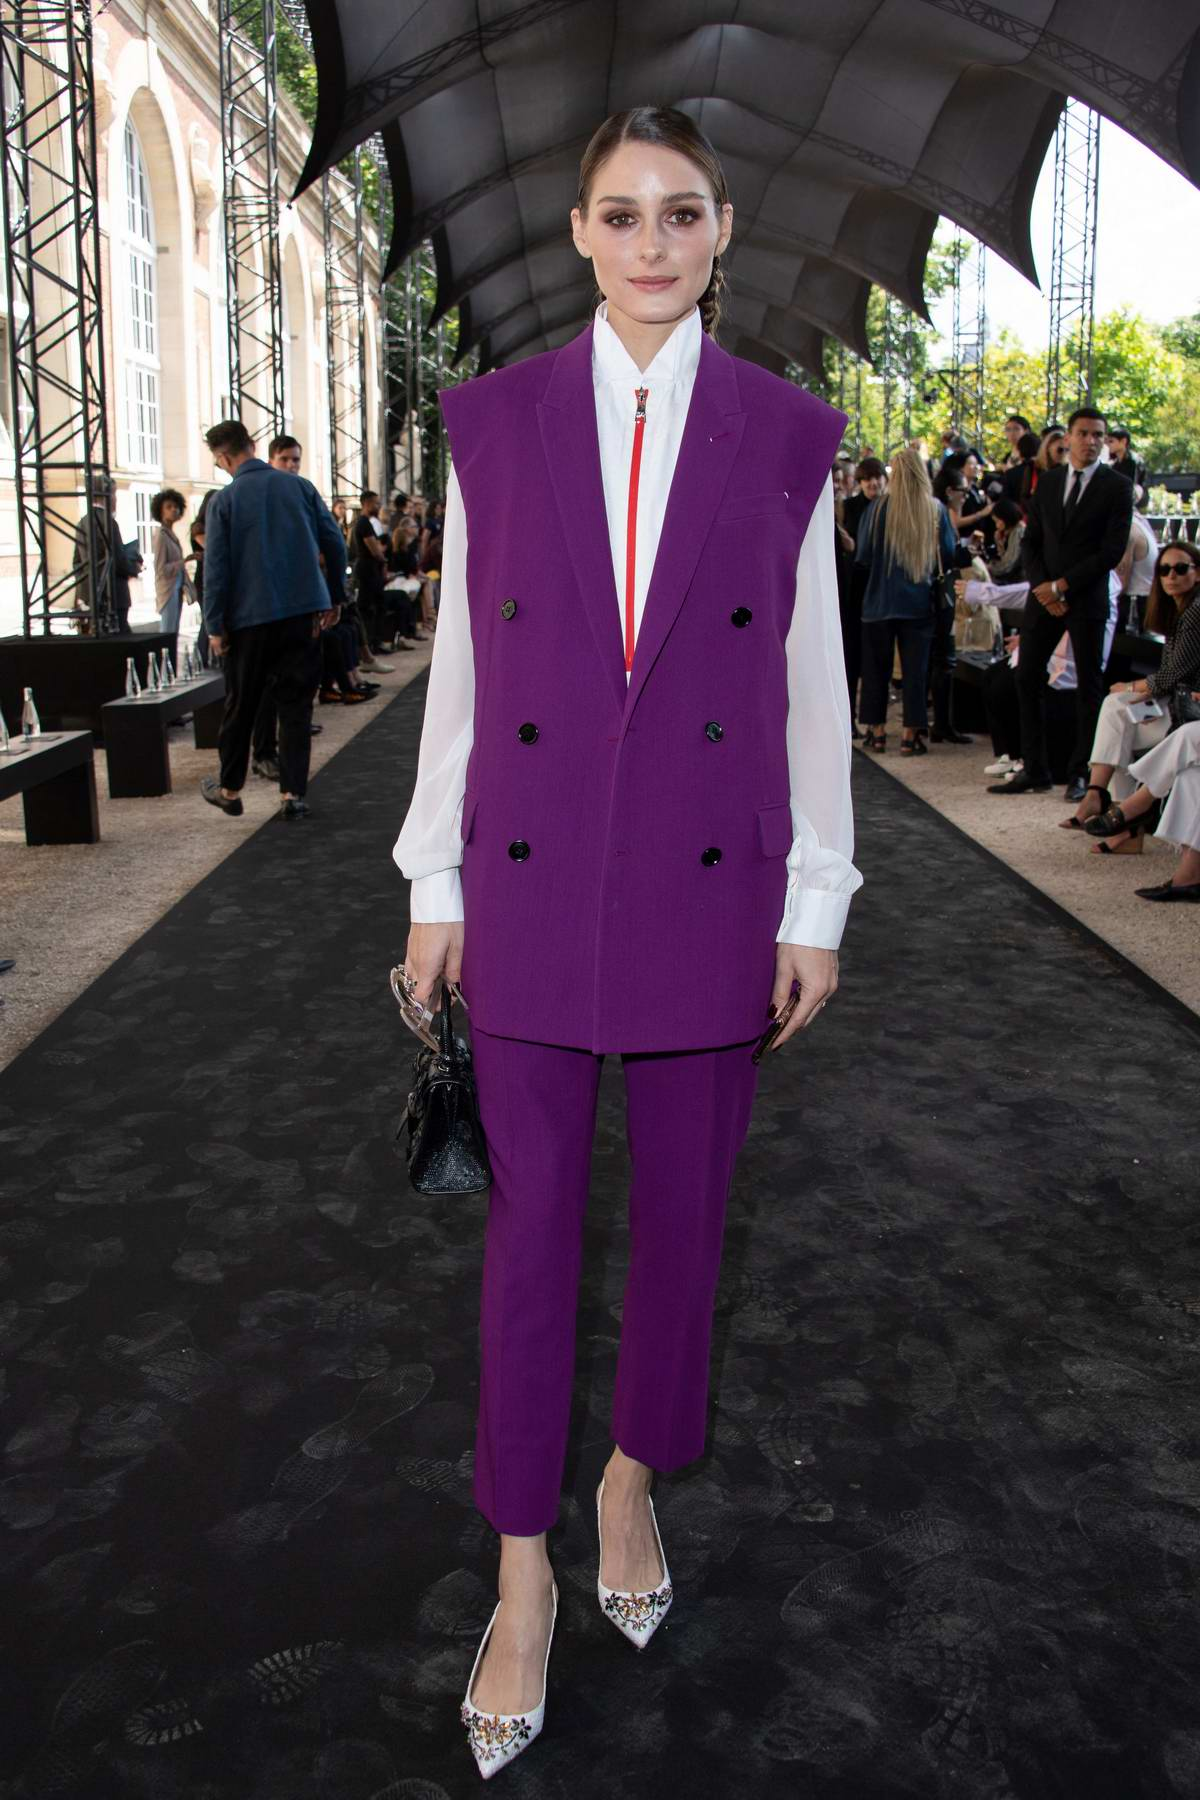 Olivia Palermo attends the Berluti Menswear Spring/Summer 2020 show during Paris Fashion Week in Paris, France